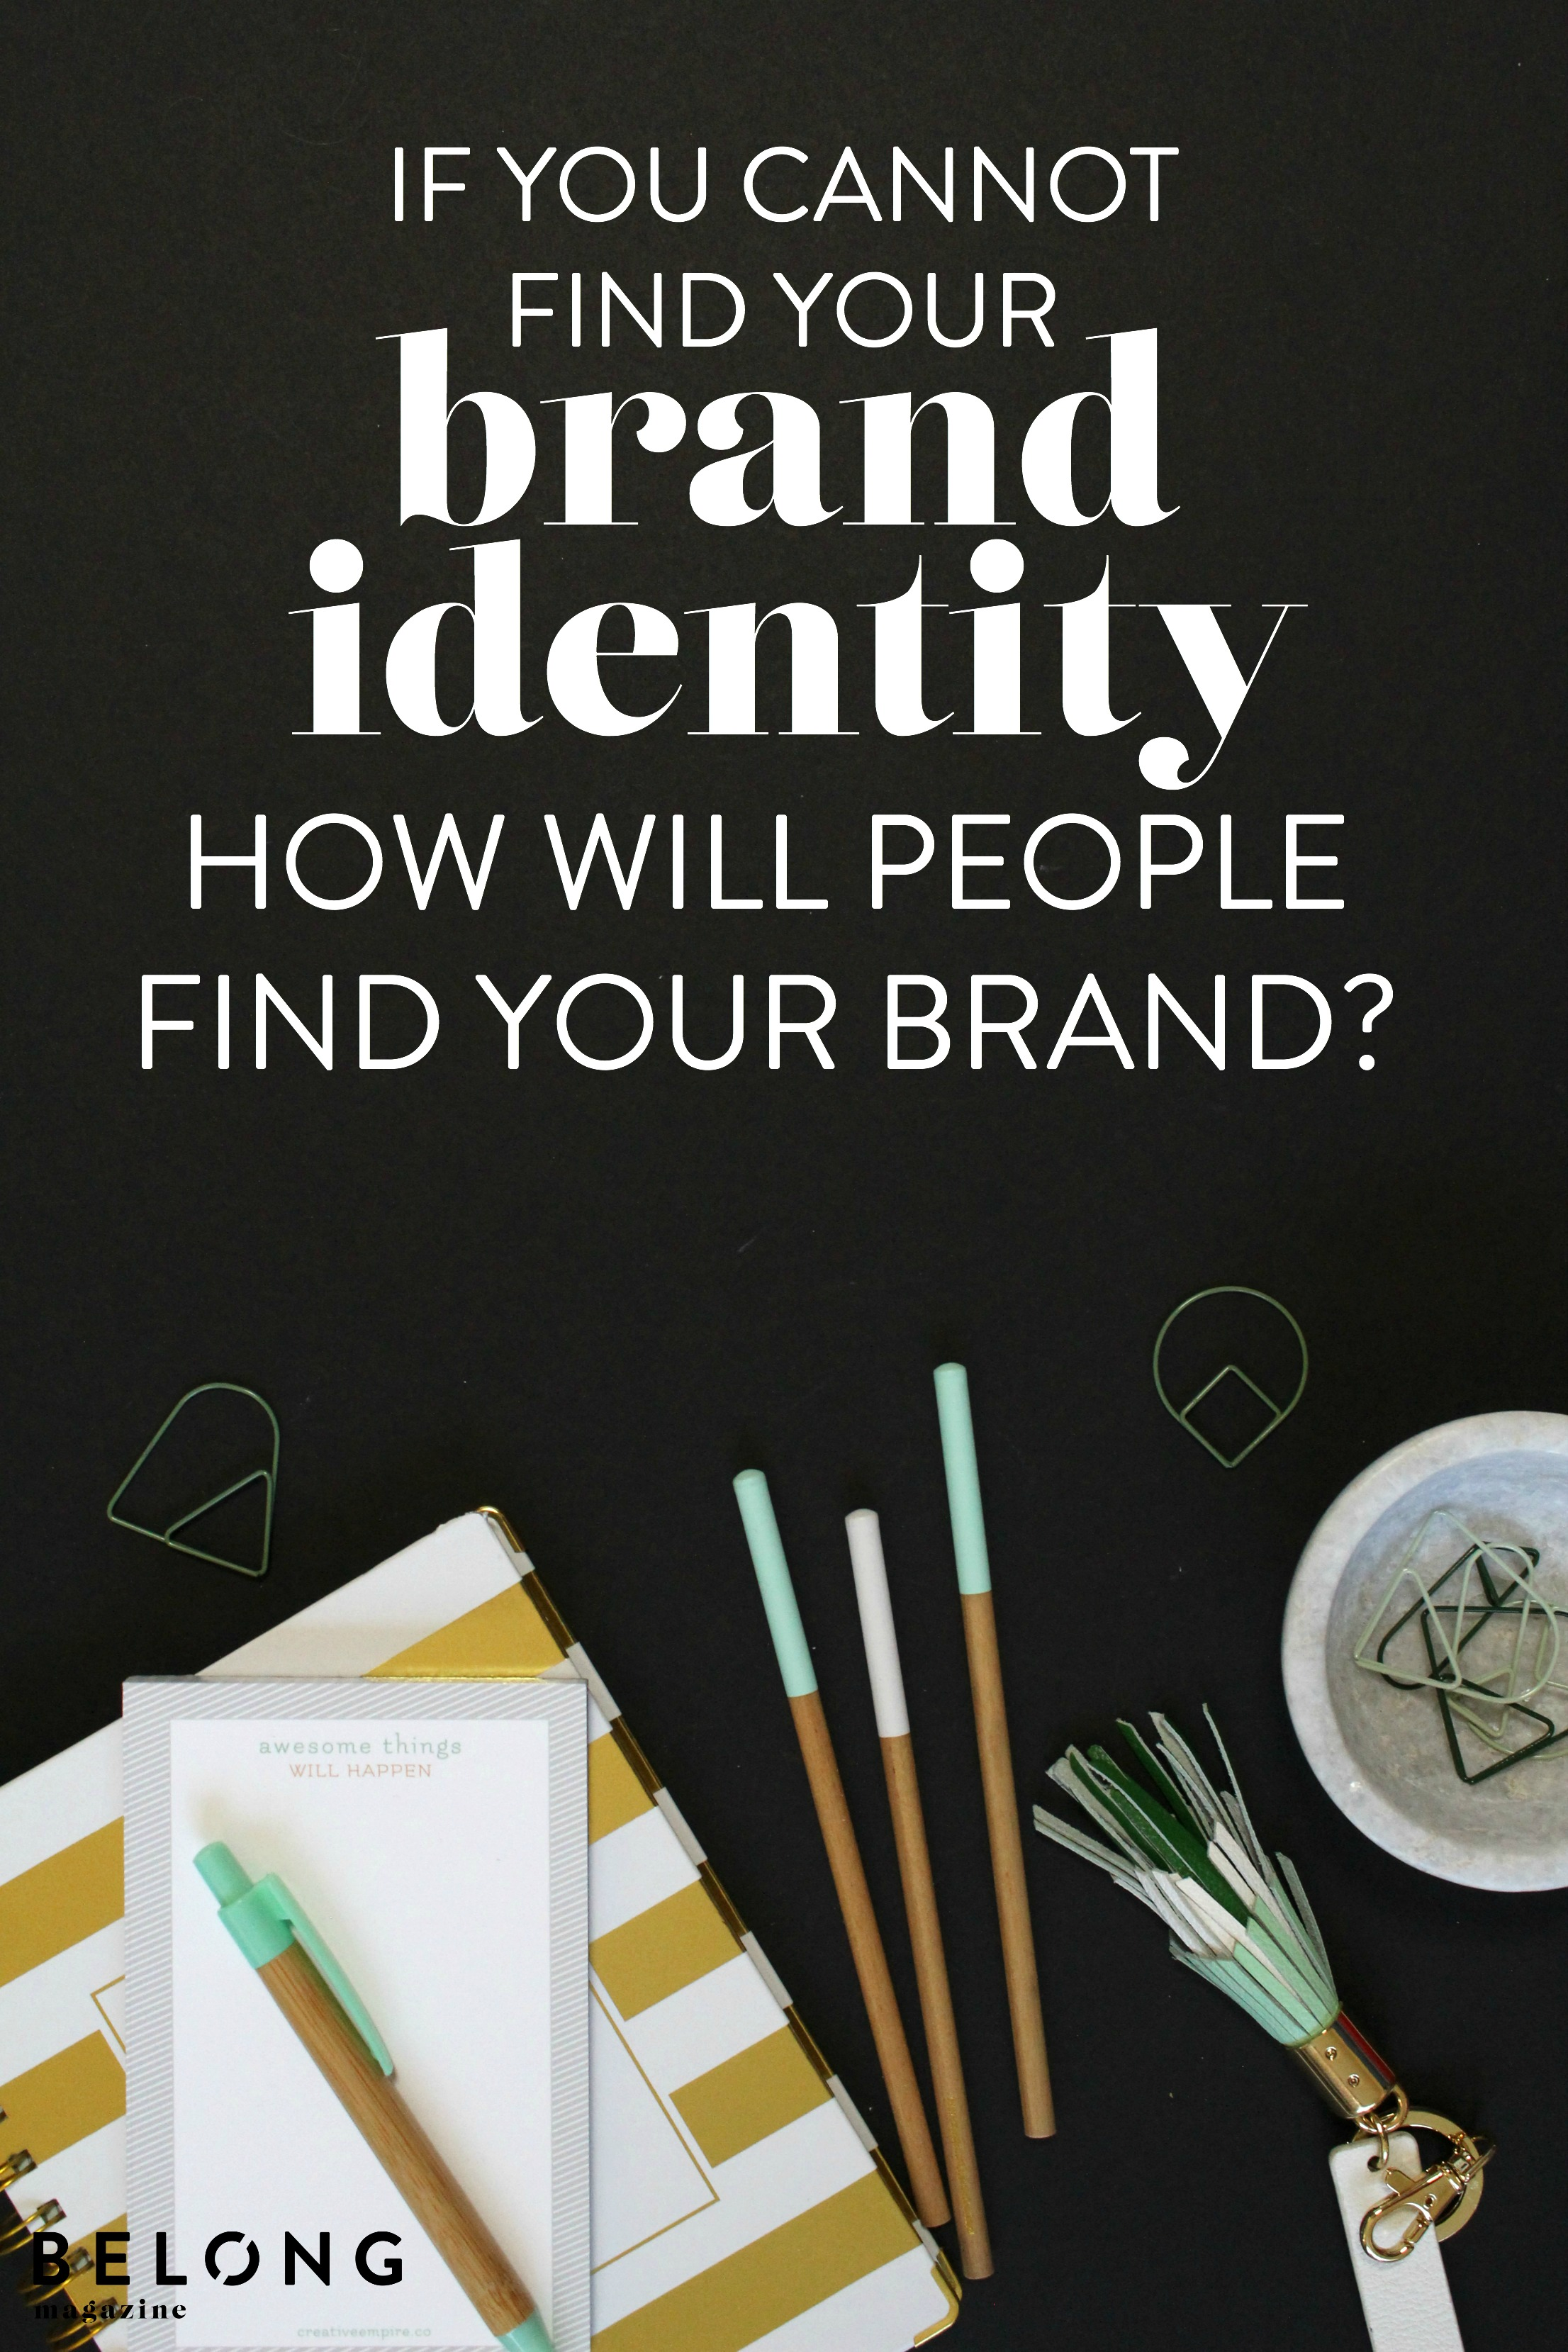 if you cannot find your brand identity, how will people find your brand - belong magazine blog - female entrepreneurs, lady boss, women in business, small business branding